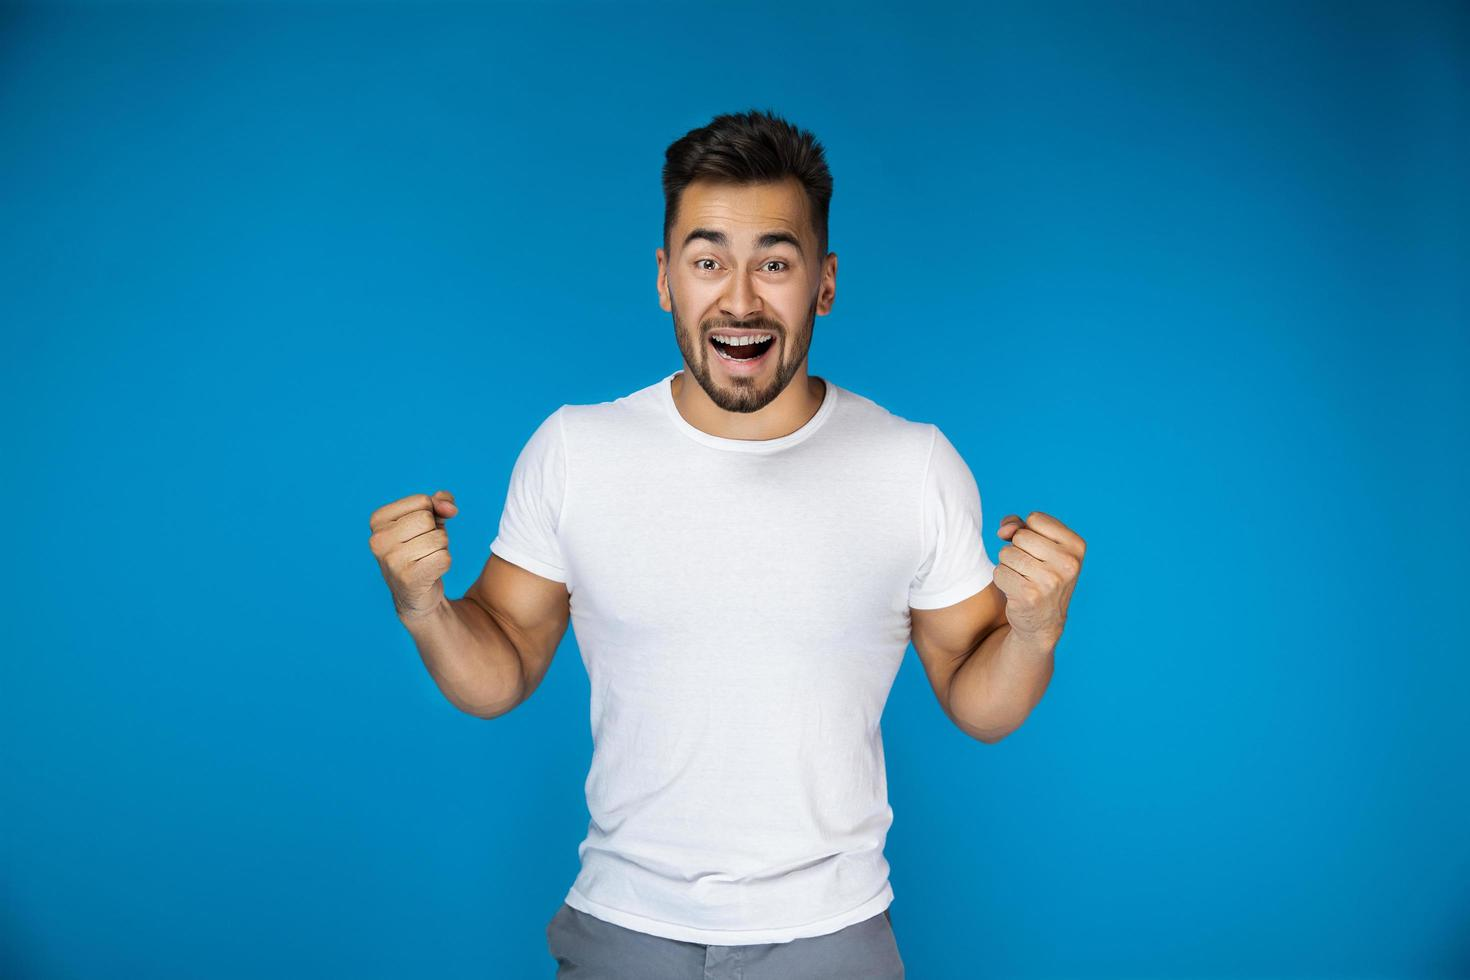 Excited man in white shirt photo